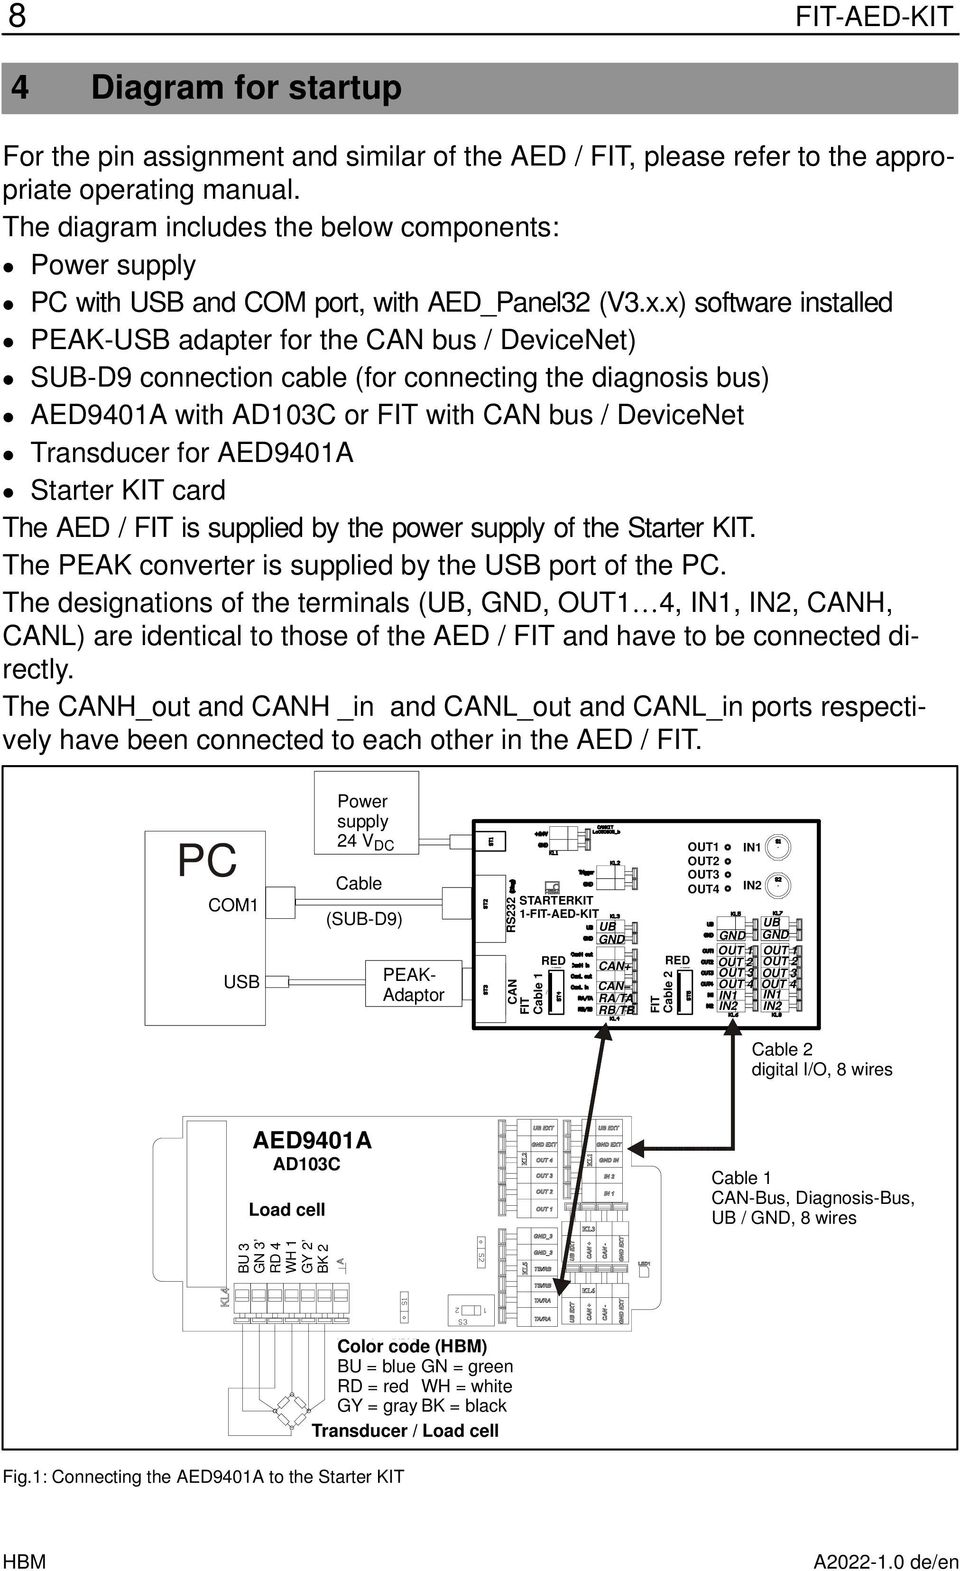 x) software installed PEAK-USB adapter for the CAN bus / evicenet) S-9 connection cable (for connecting the diagnosis bus) AE9401A with A103C or with CAN bus / evicenet Transducer for AE9401A Starter